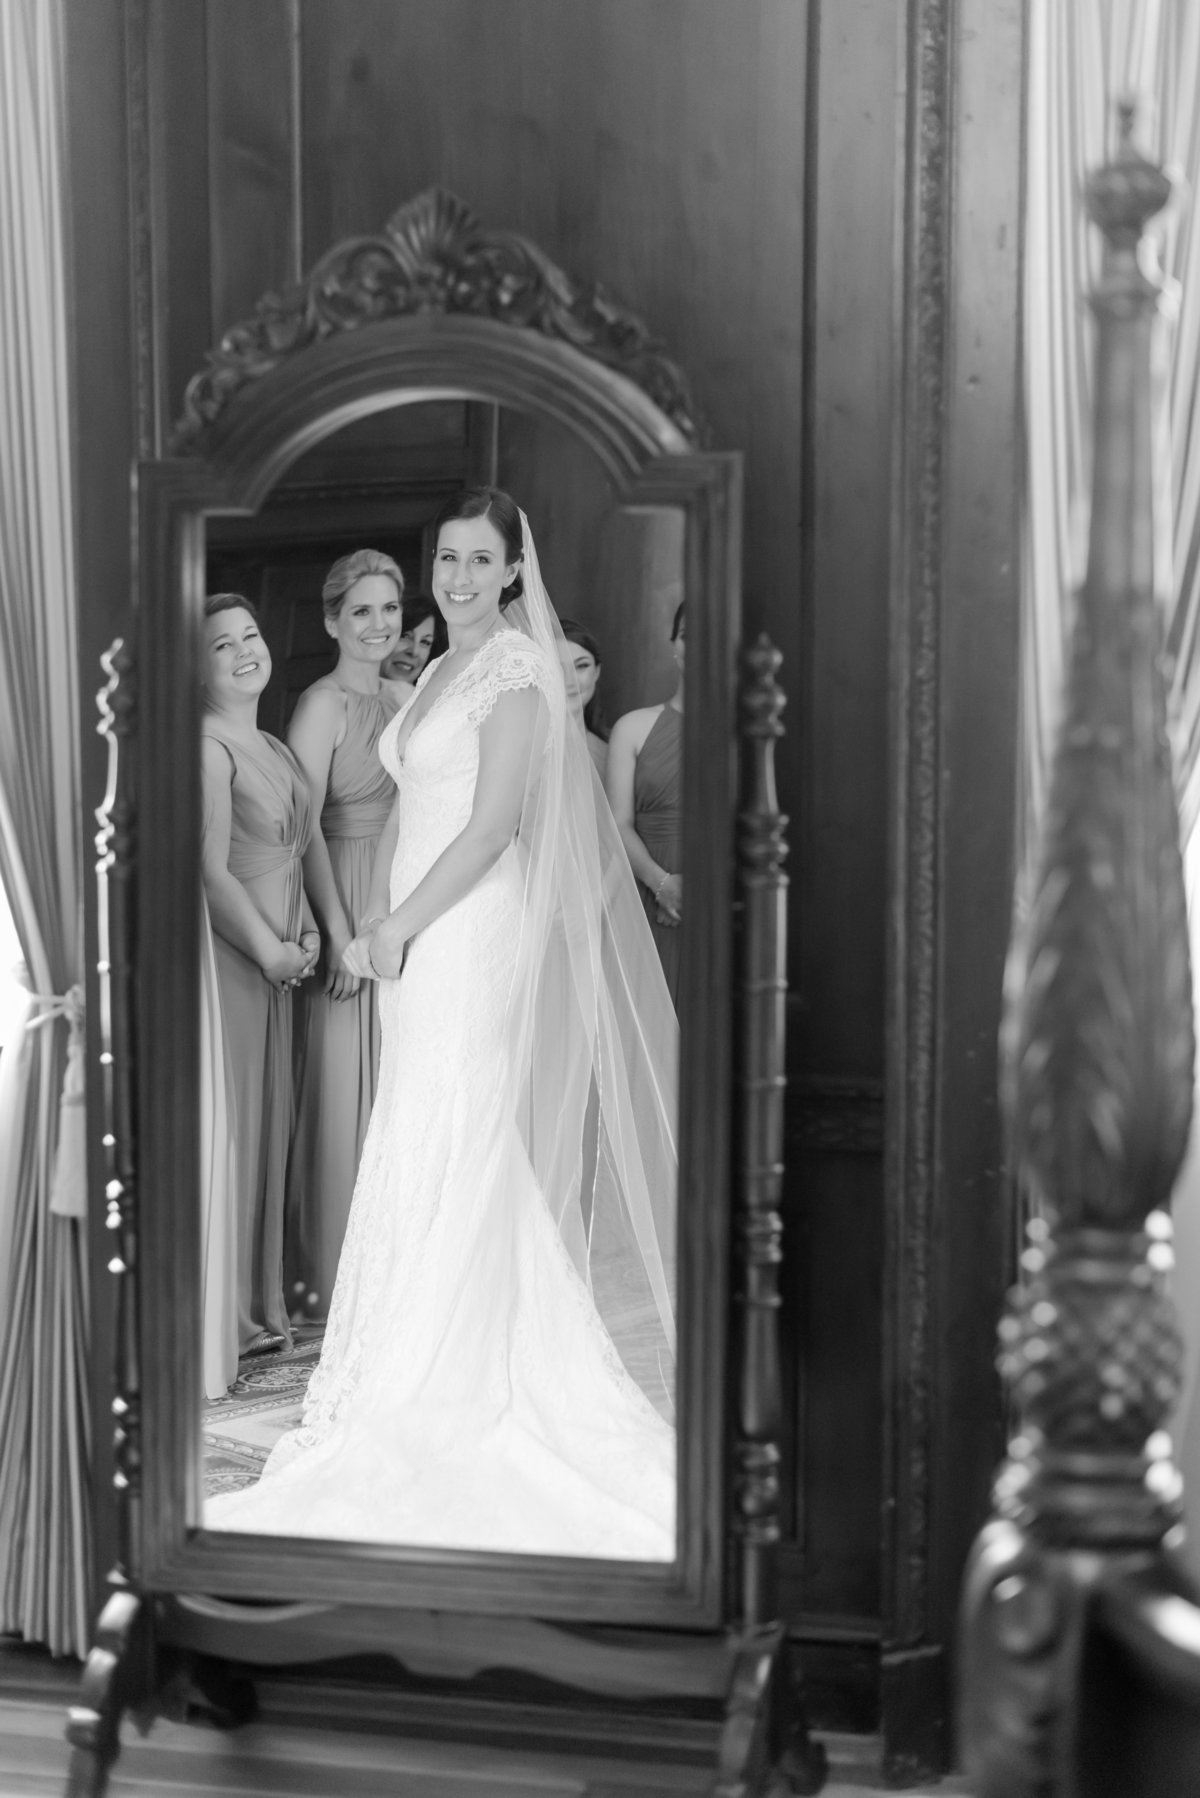 NYIT-De-Seversky-Mansion-Wedding-2017-05-12OliviaandBenWedding150345-28